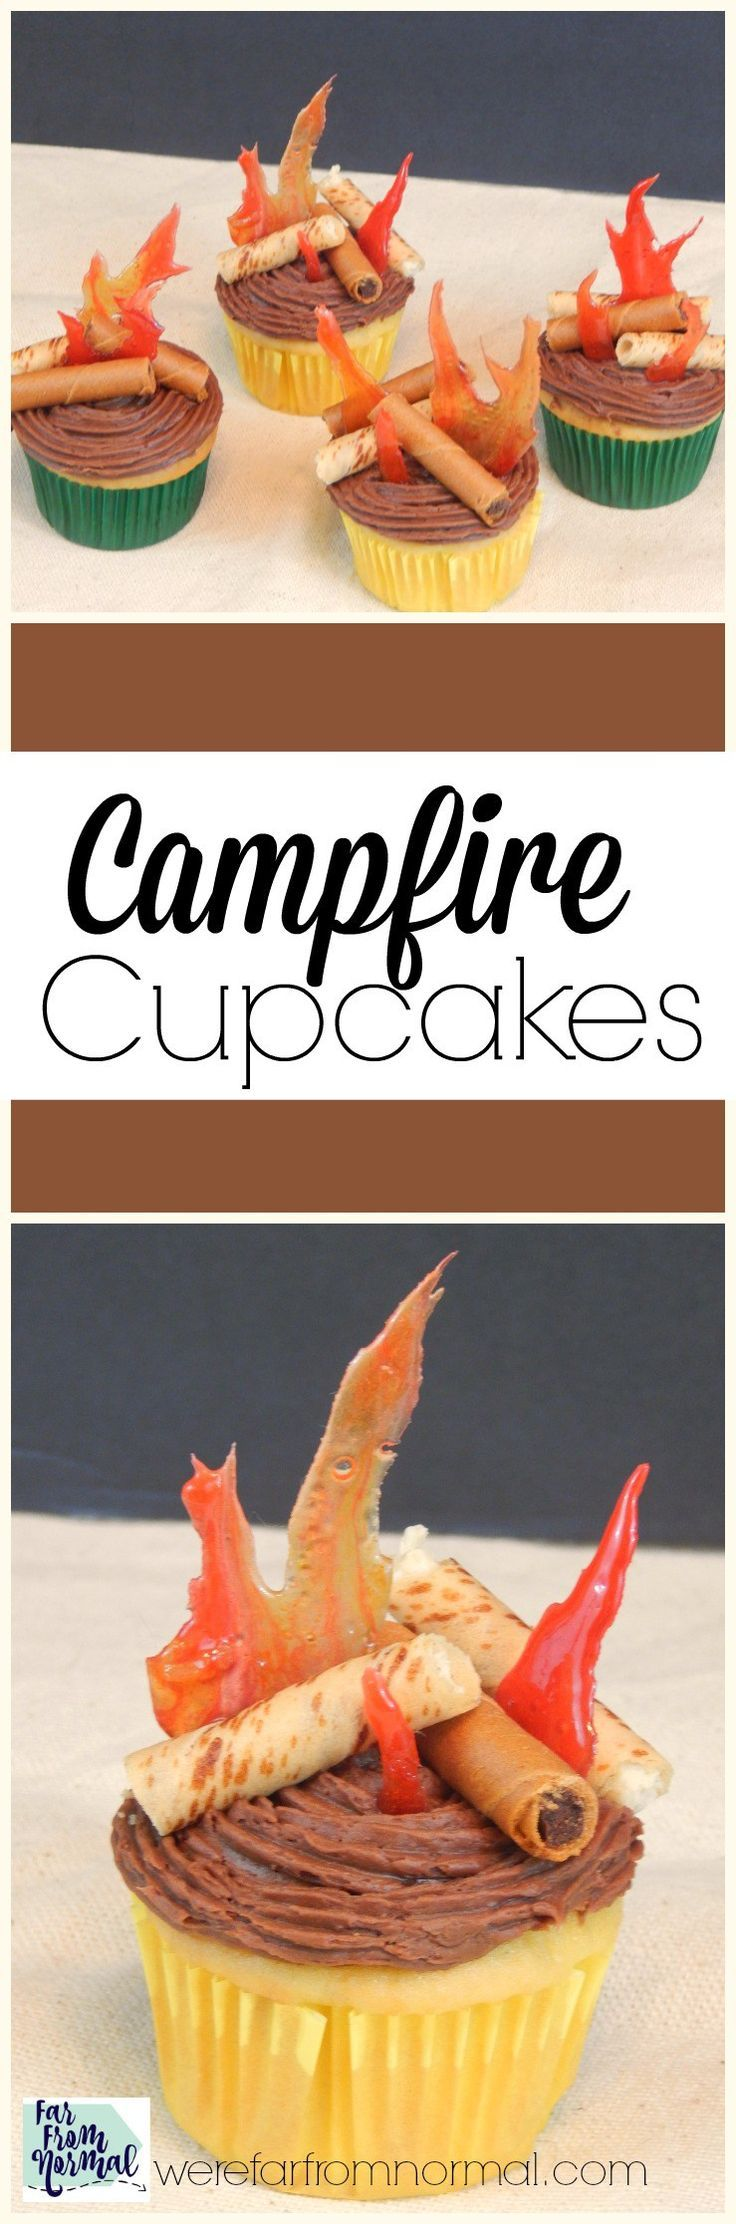 Are you planning a camping trip, an outdoor party, or camping birthday party? Whatever the event these campfire cupcakes make an amazing addition!